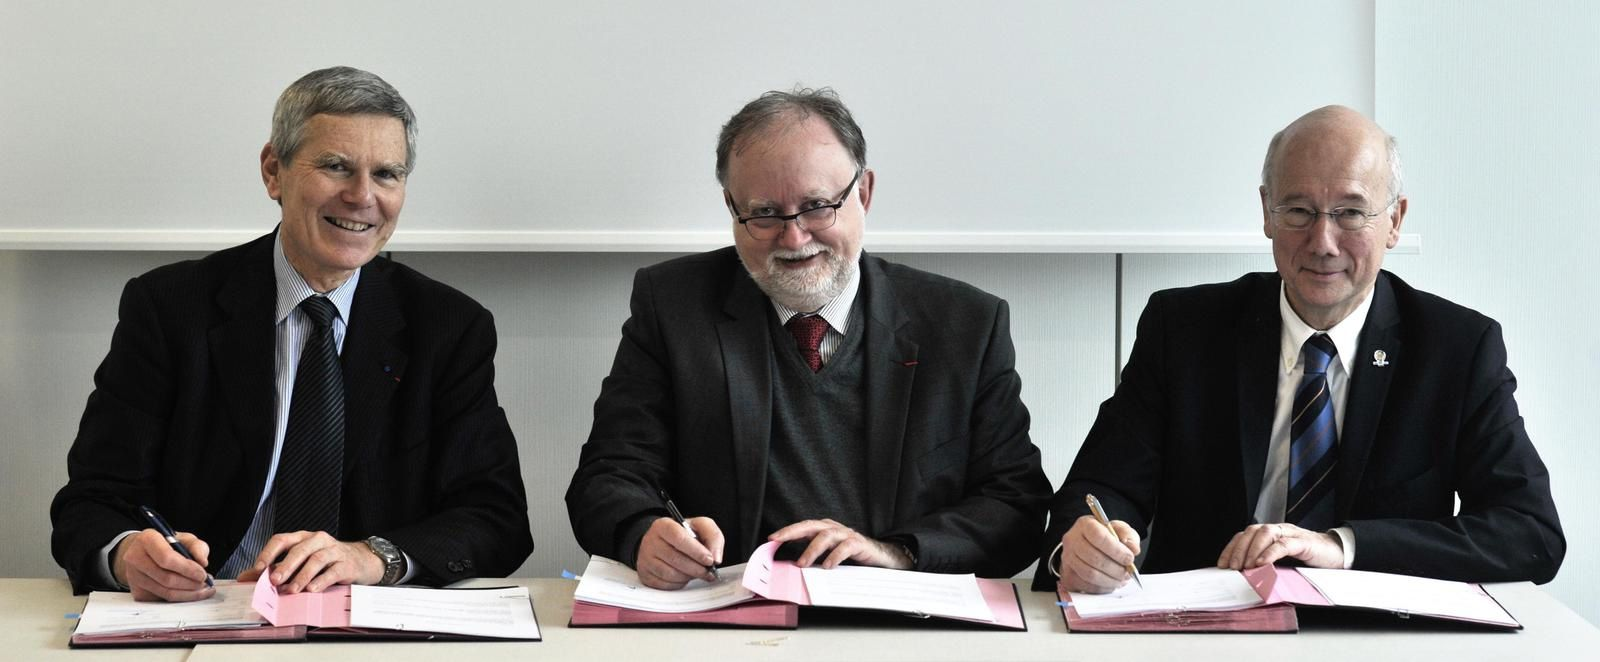 X-CAN: École Polytechnique and Thales to develop a new generation of lasers